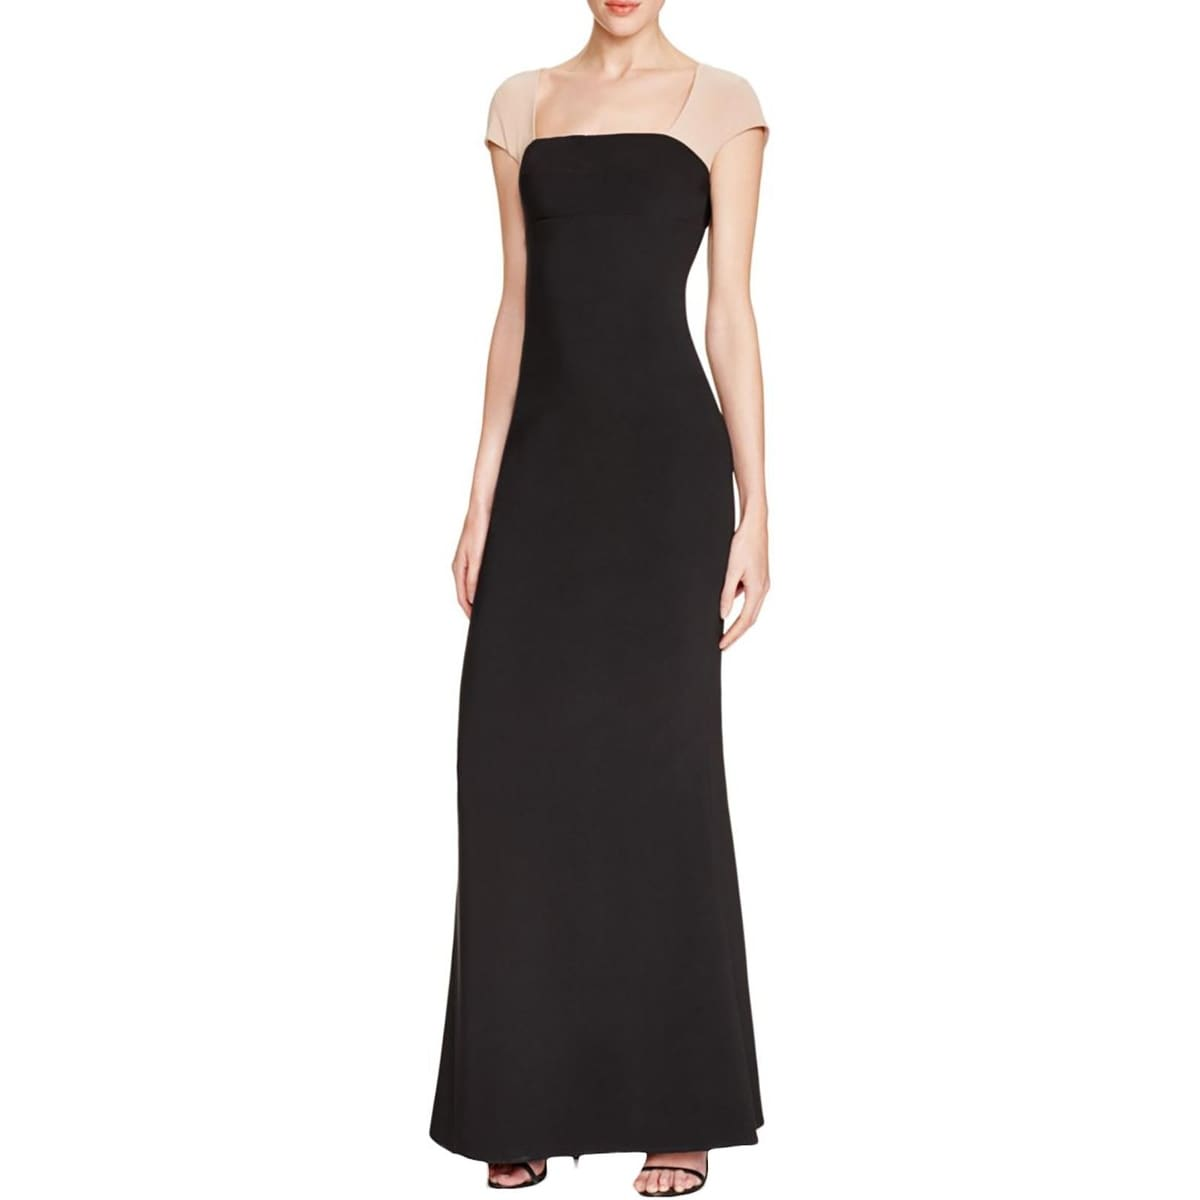 97ec118785e Shop Maria Bianca Nero Womens Evening Dress Matte Jersey Colorblock - Free  Shipping On Orders Over $45 - Overstock - 16559520